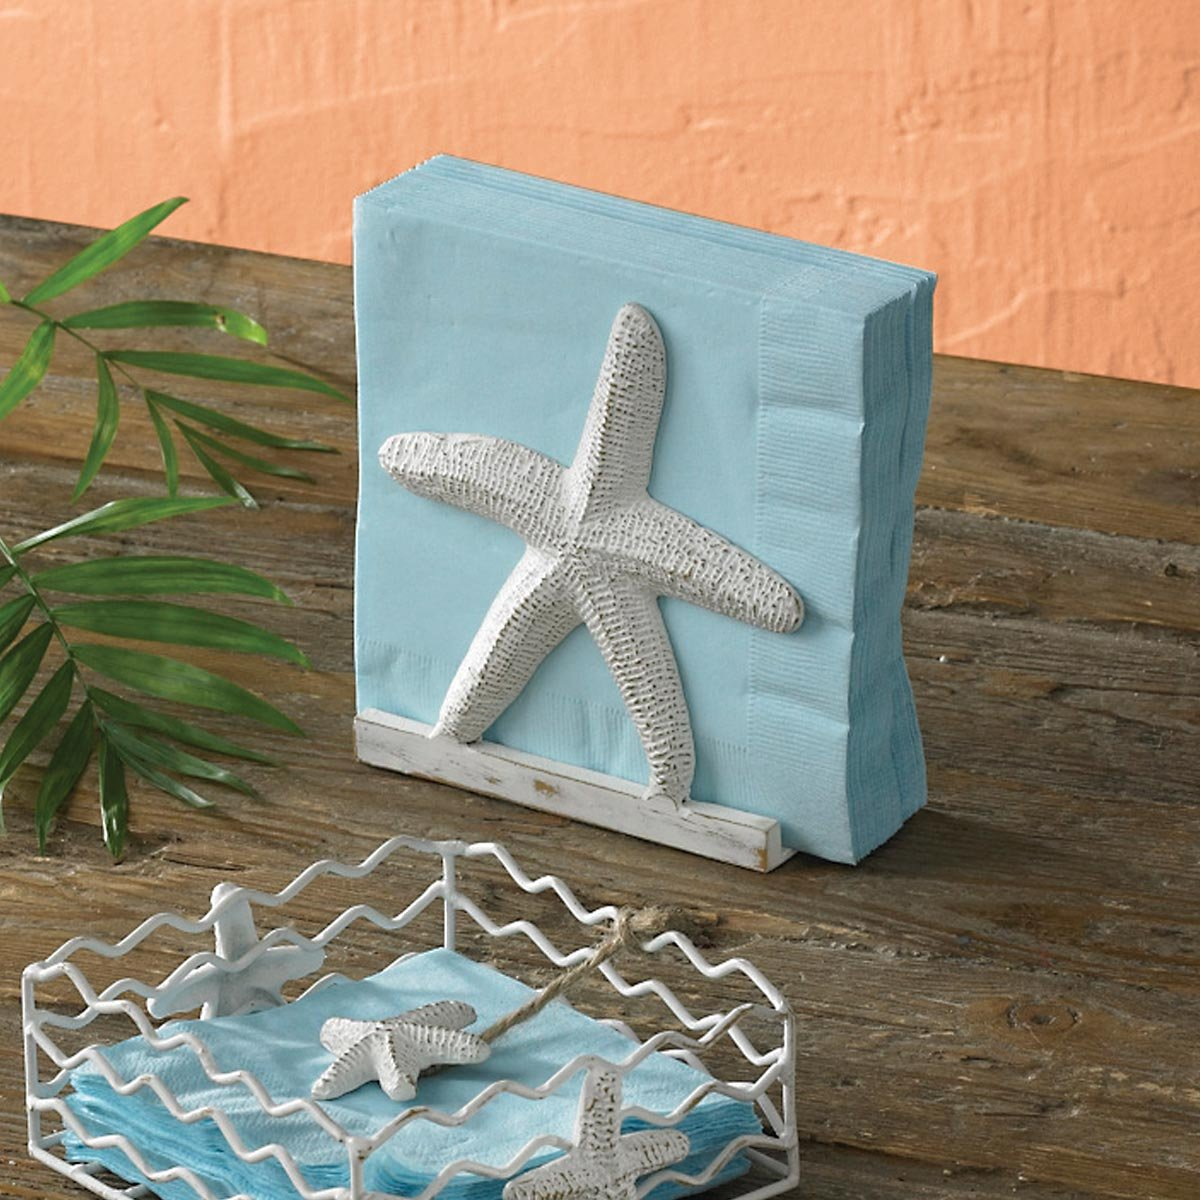 Tropical Nautical Starfish Lunch Napkin Holder by Park Designs